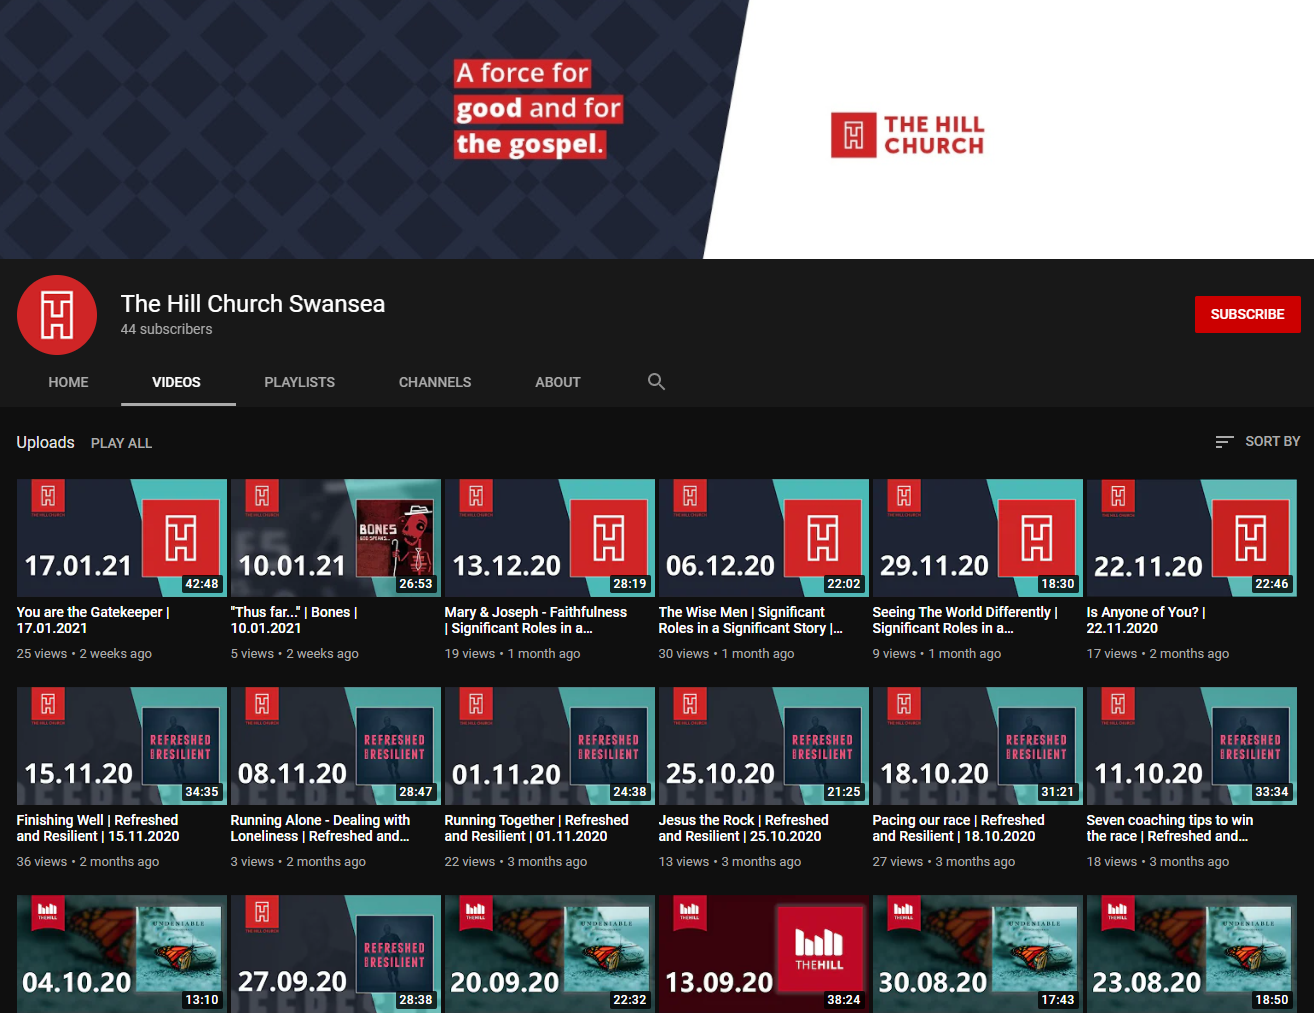 A screenshot of our YouTube Channel